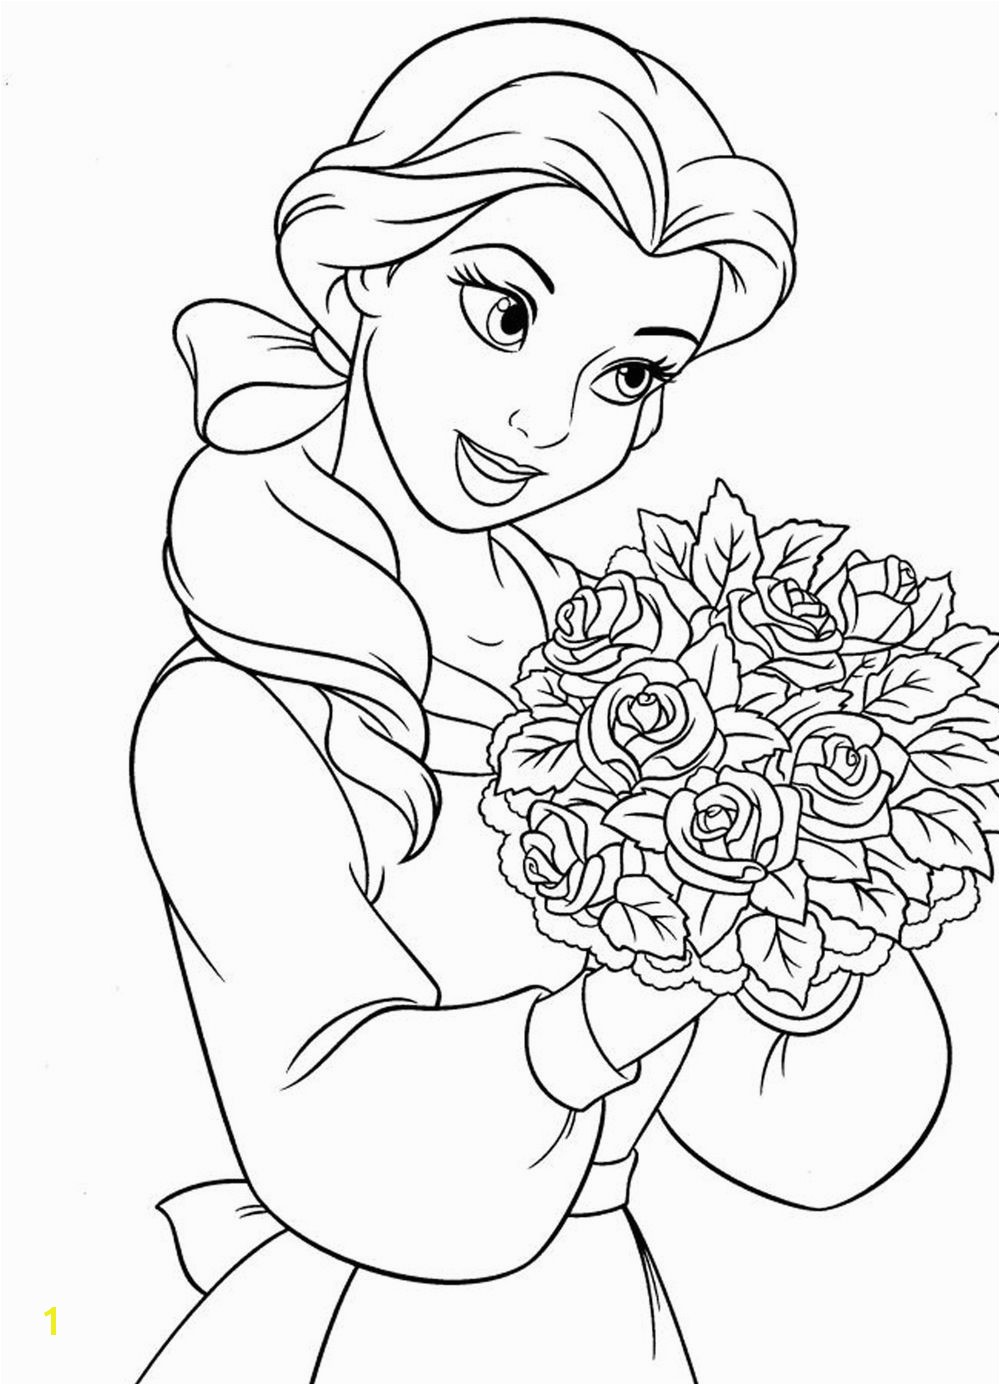 princess coloring pages for girls Free